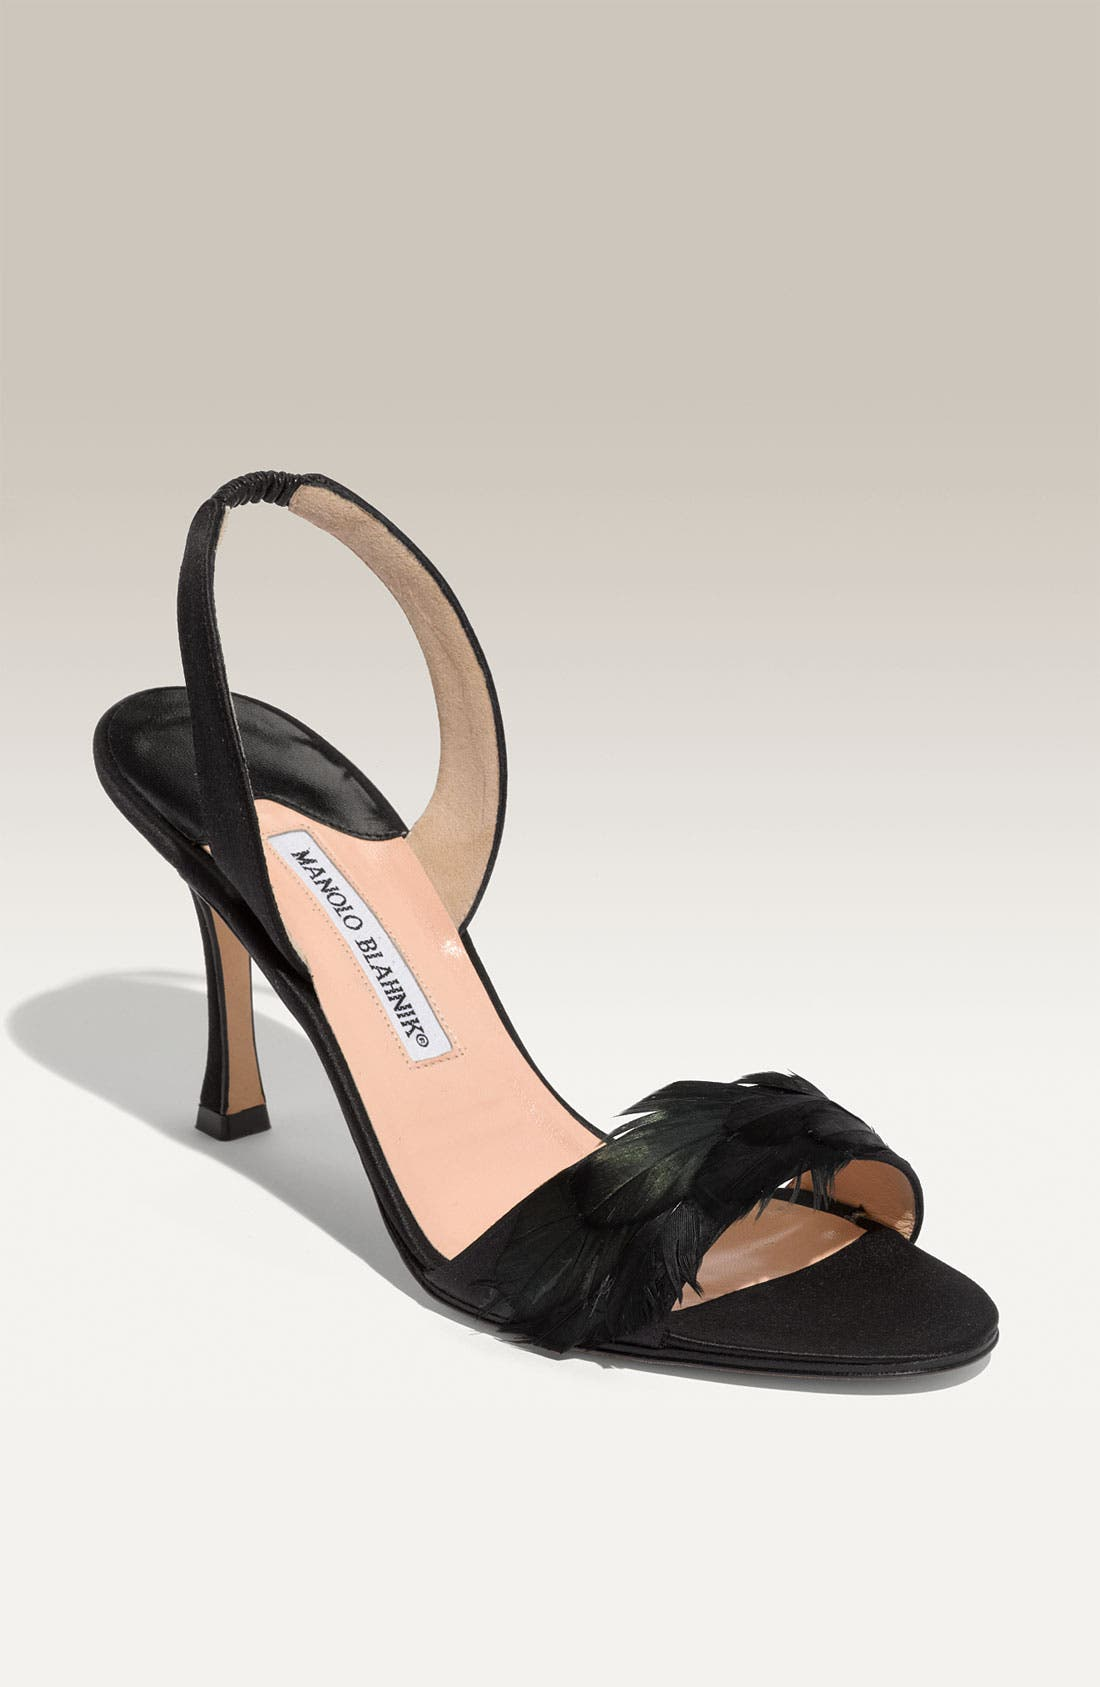 Alternate Image 1 Selected - Manolo Blahnik 'Catalinasli' Sandal